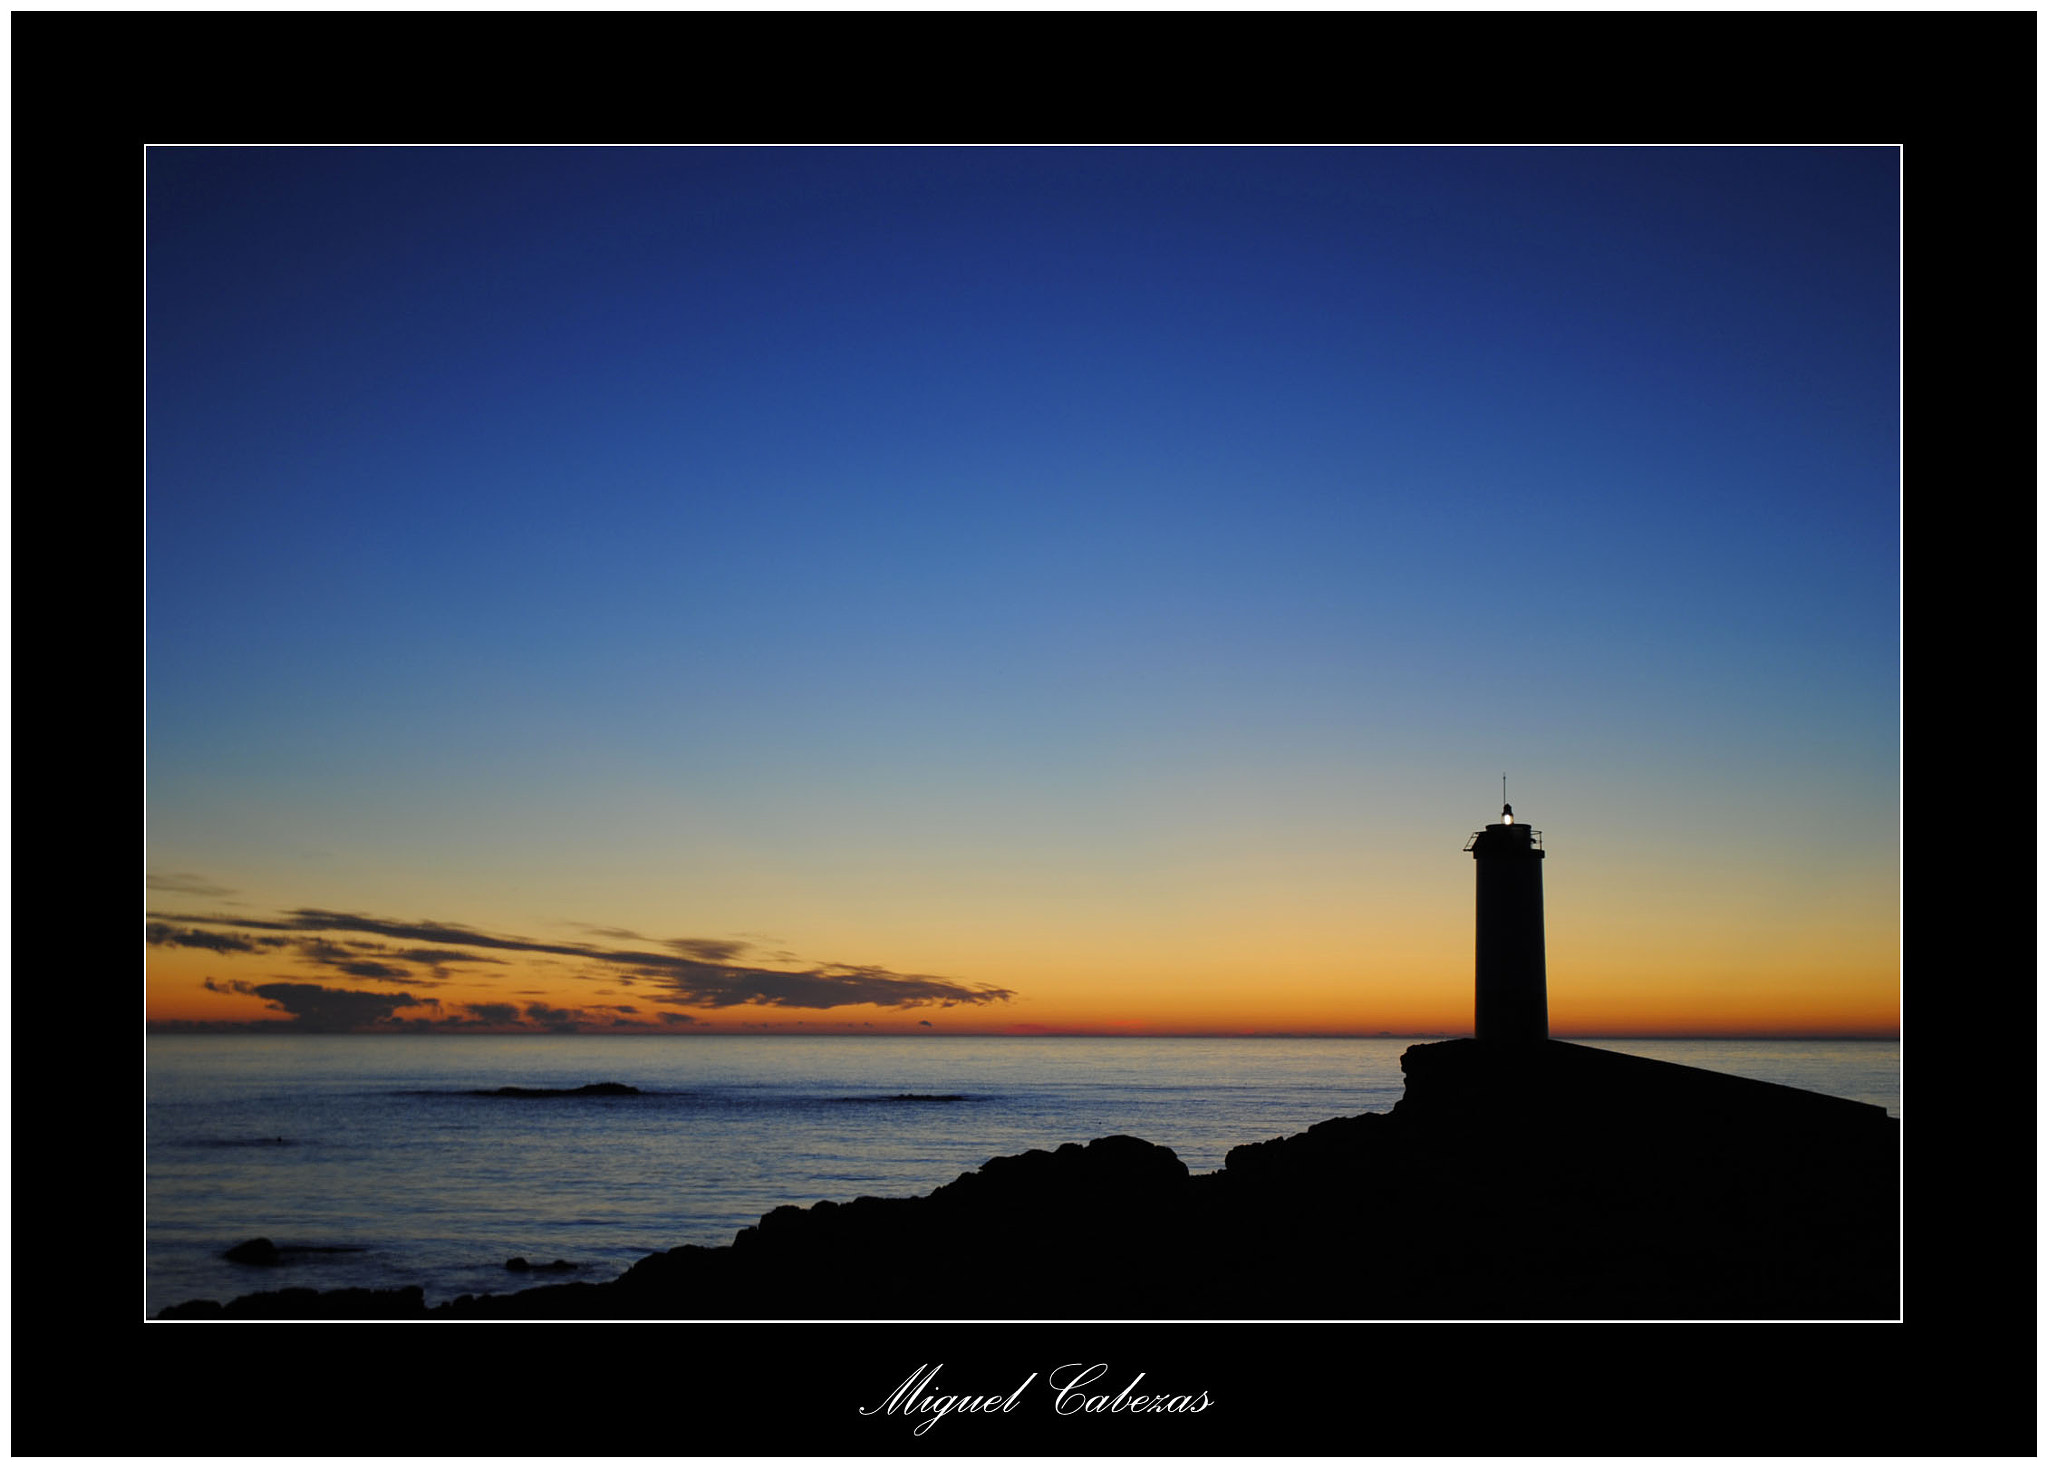 Photograph Faro Roncudo by Miguel  Cabezas on 500px